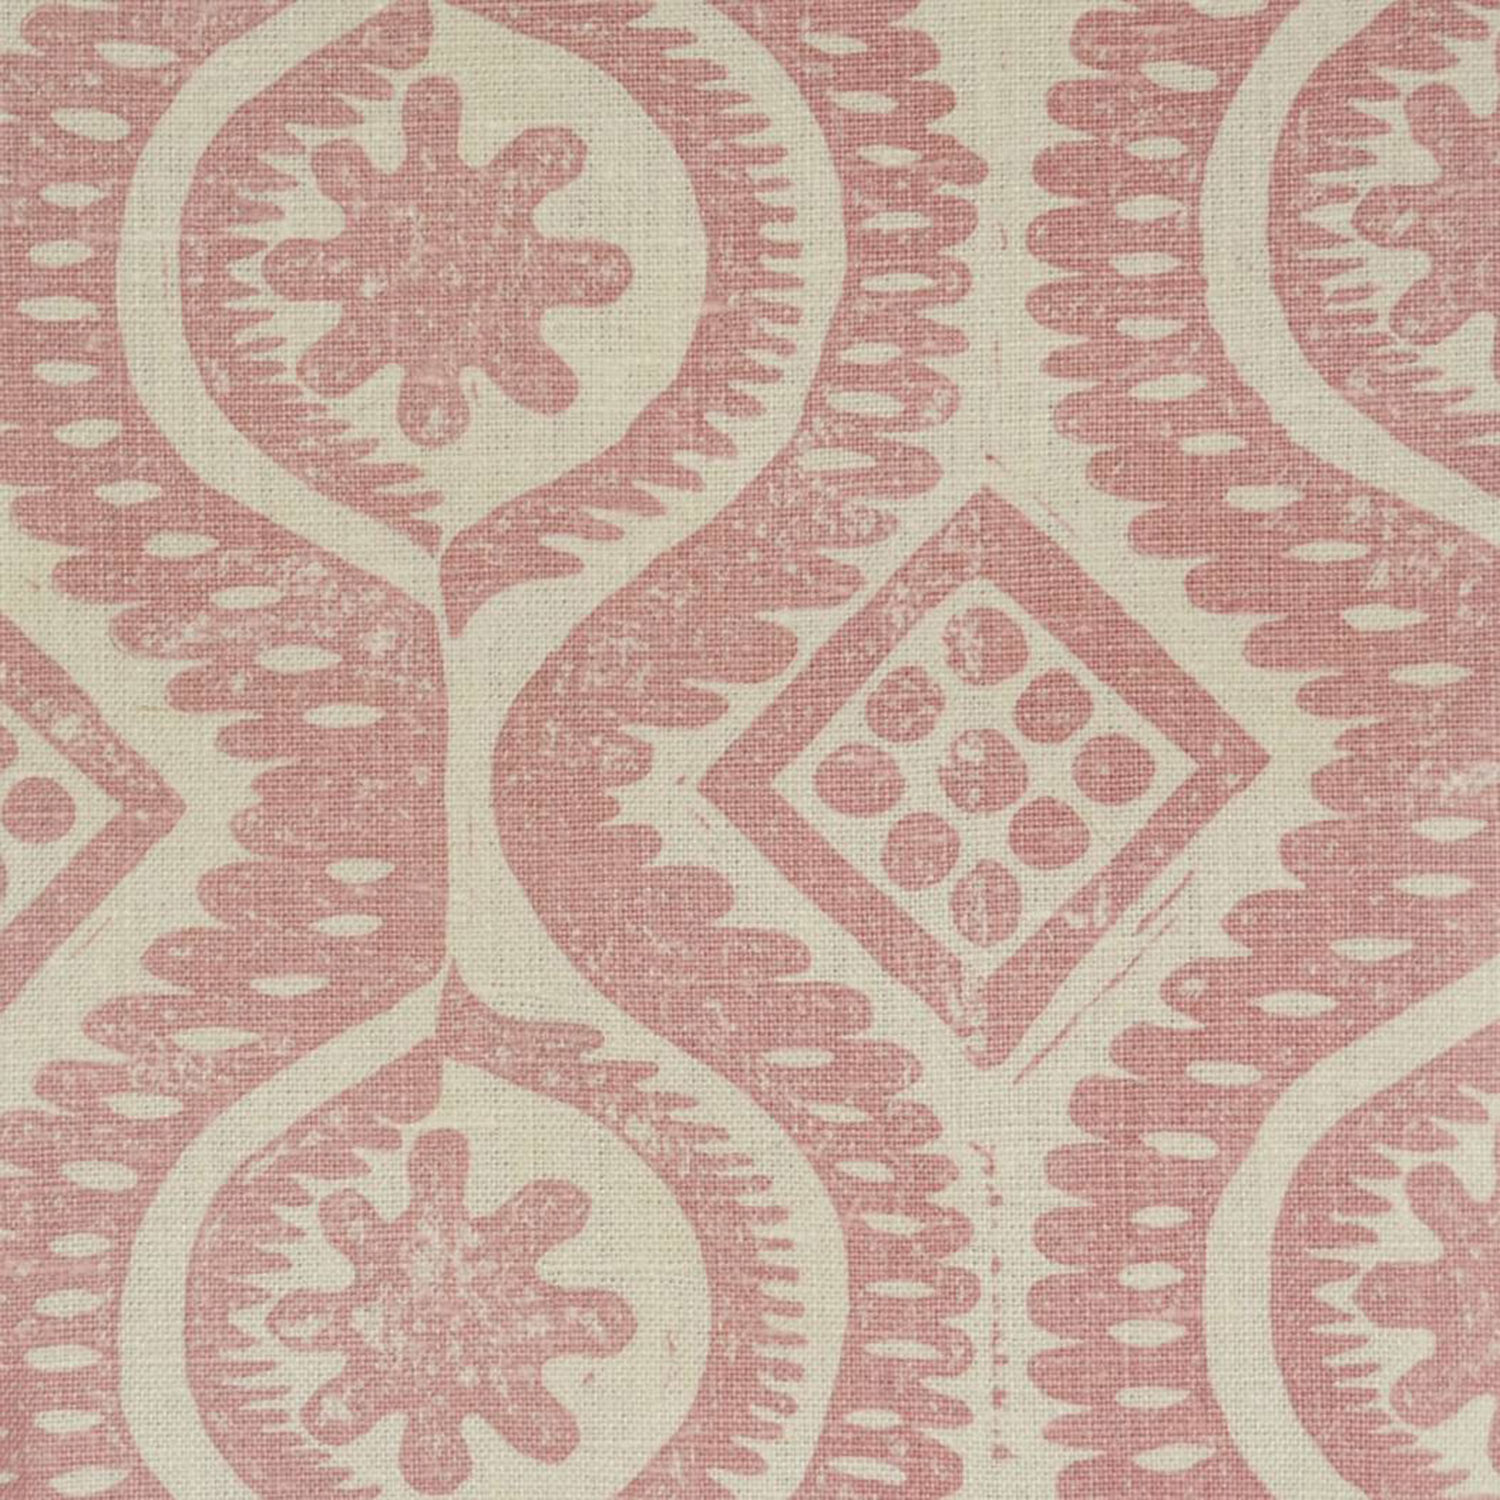 <p><strong>DAMASK</strong>pink 6500-08<a href=/the-peggy-angus-collection/damask-pink-6500-08>More →</a></p>